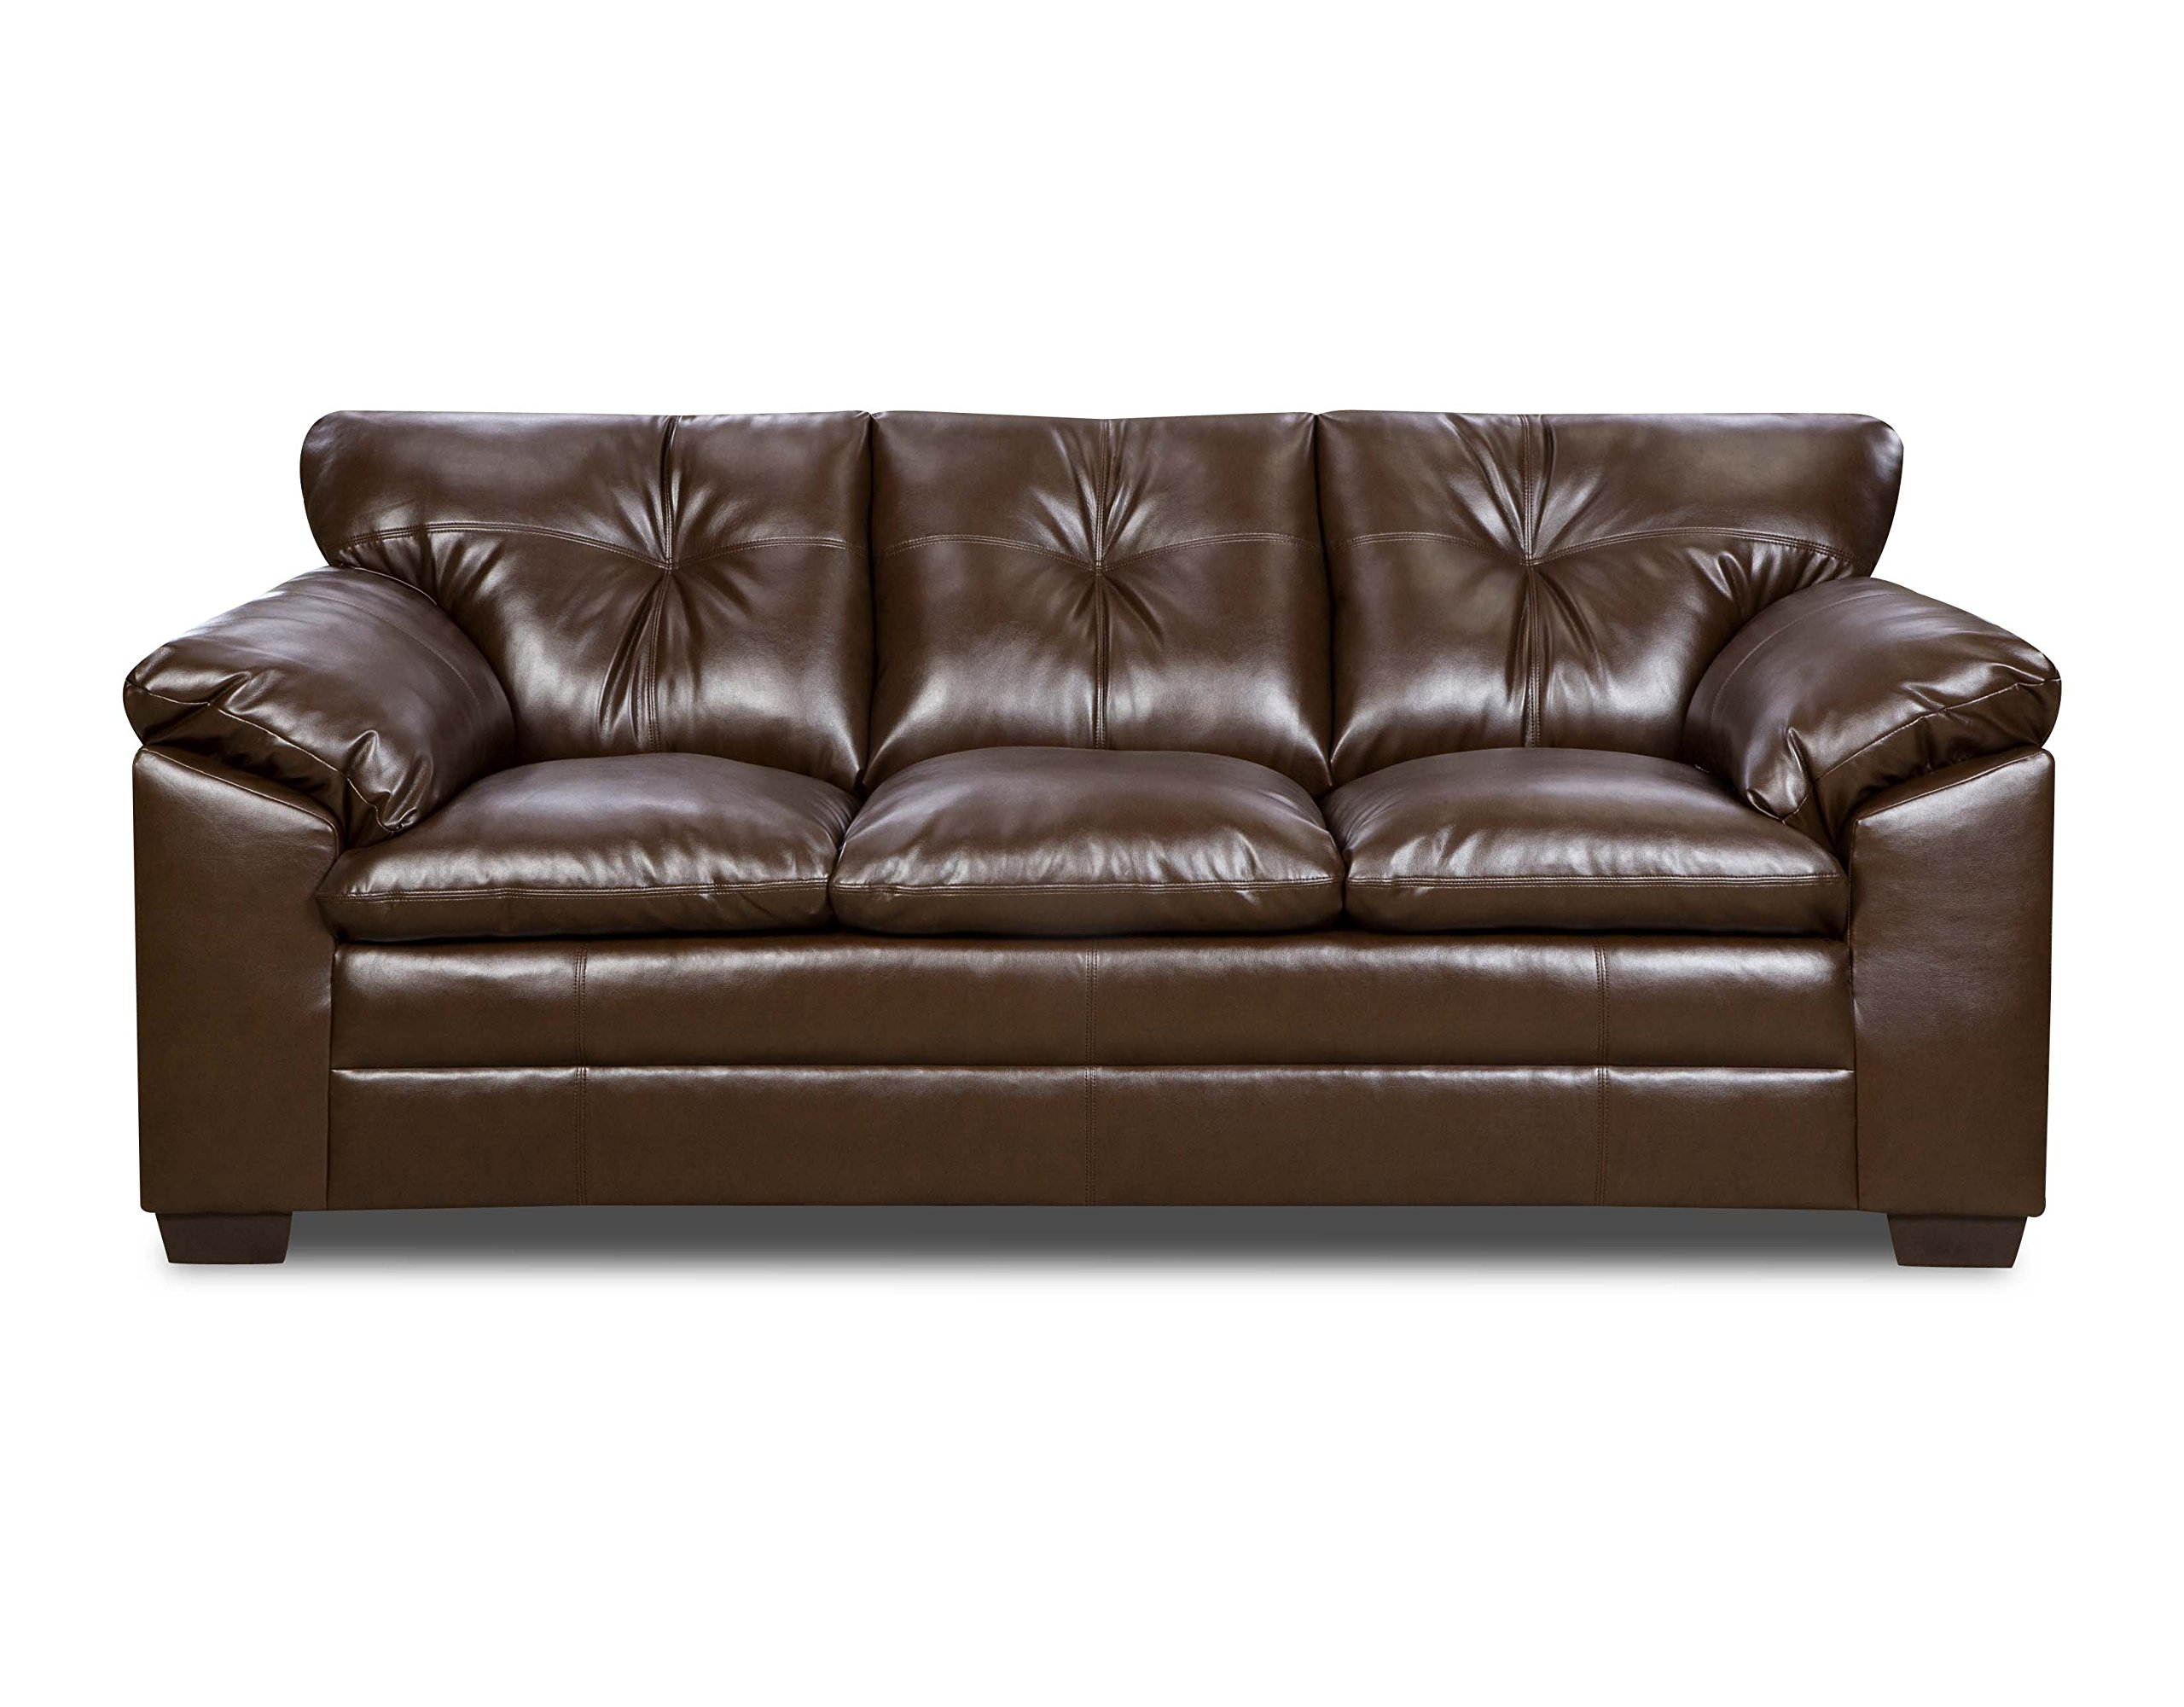 Simmons Upholstery 6569-03 Sebring Coffeebean Bonded Leather Sofa